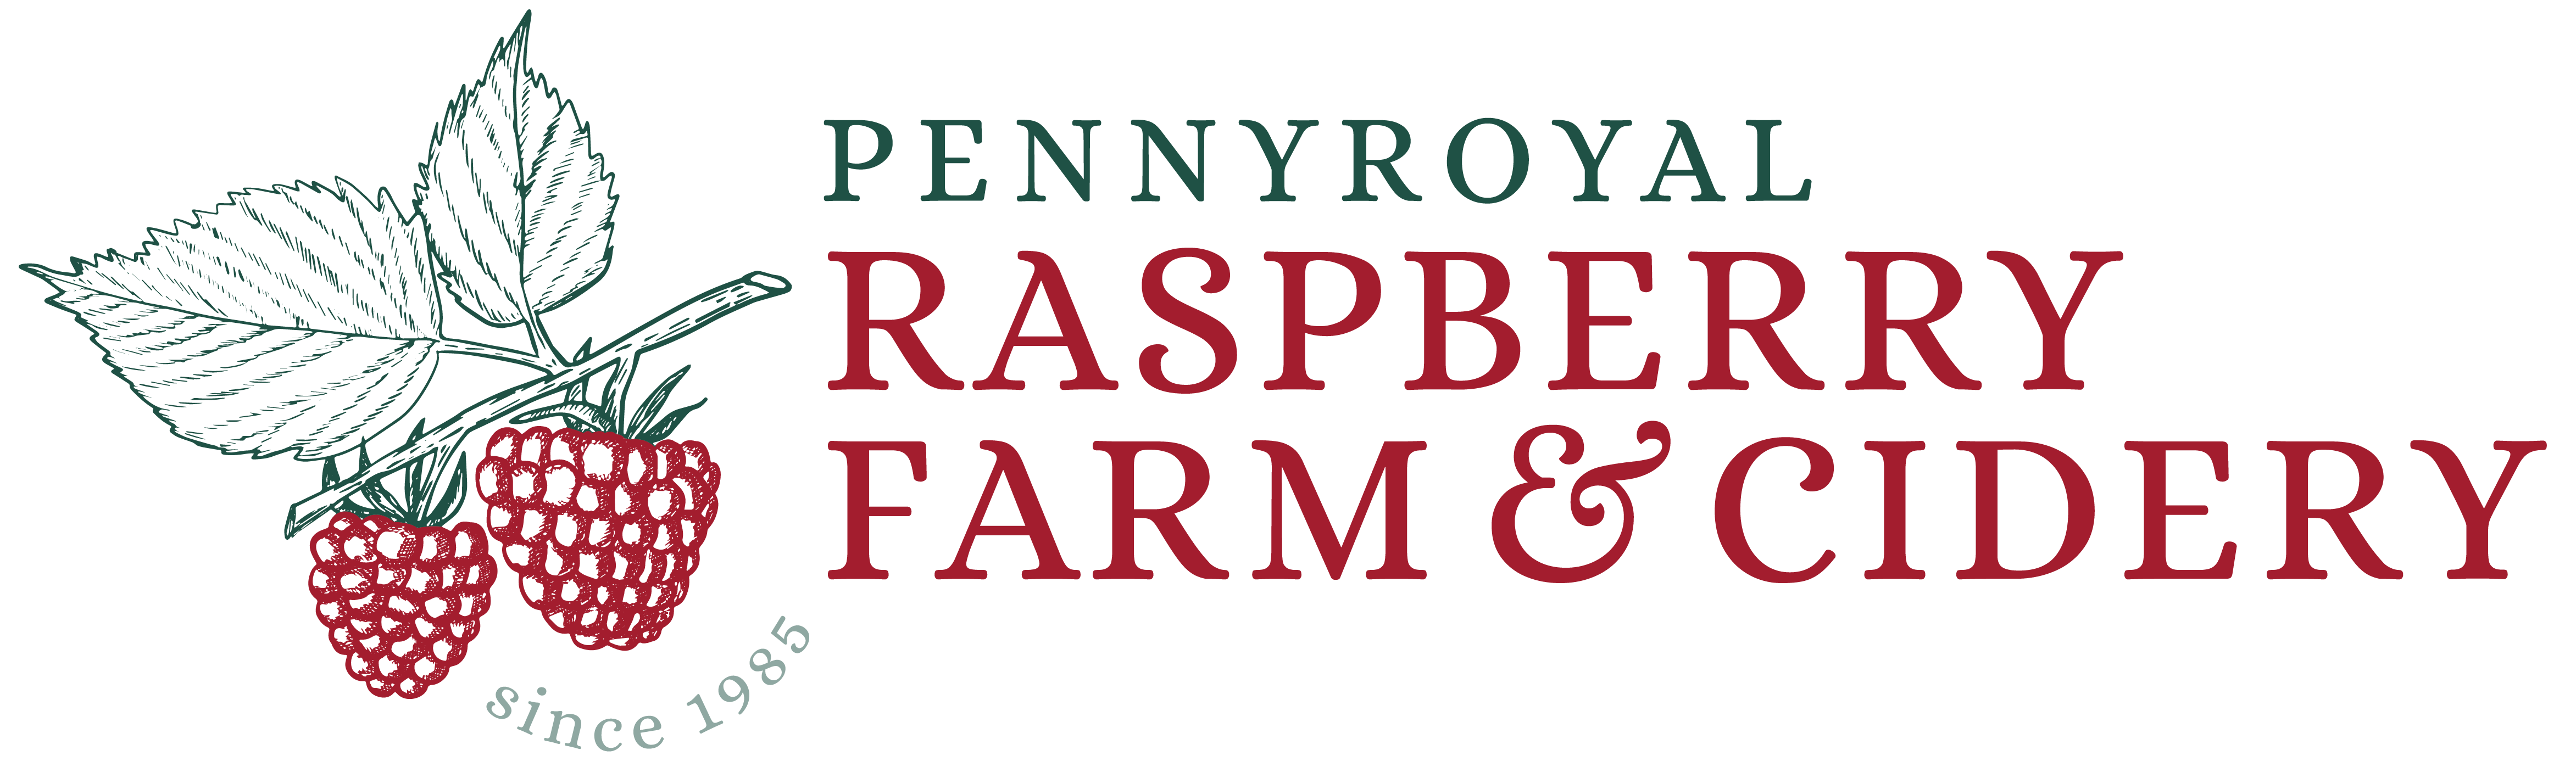 Pennyroyal Raspberry Farm & Cidery